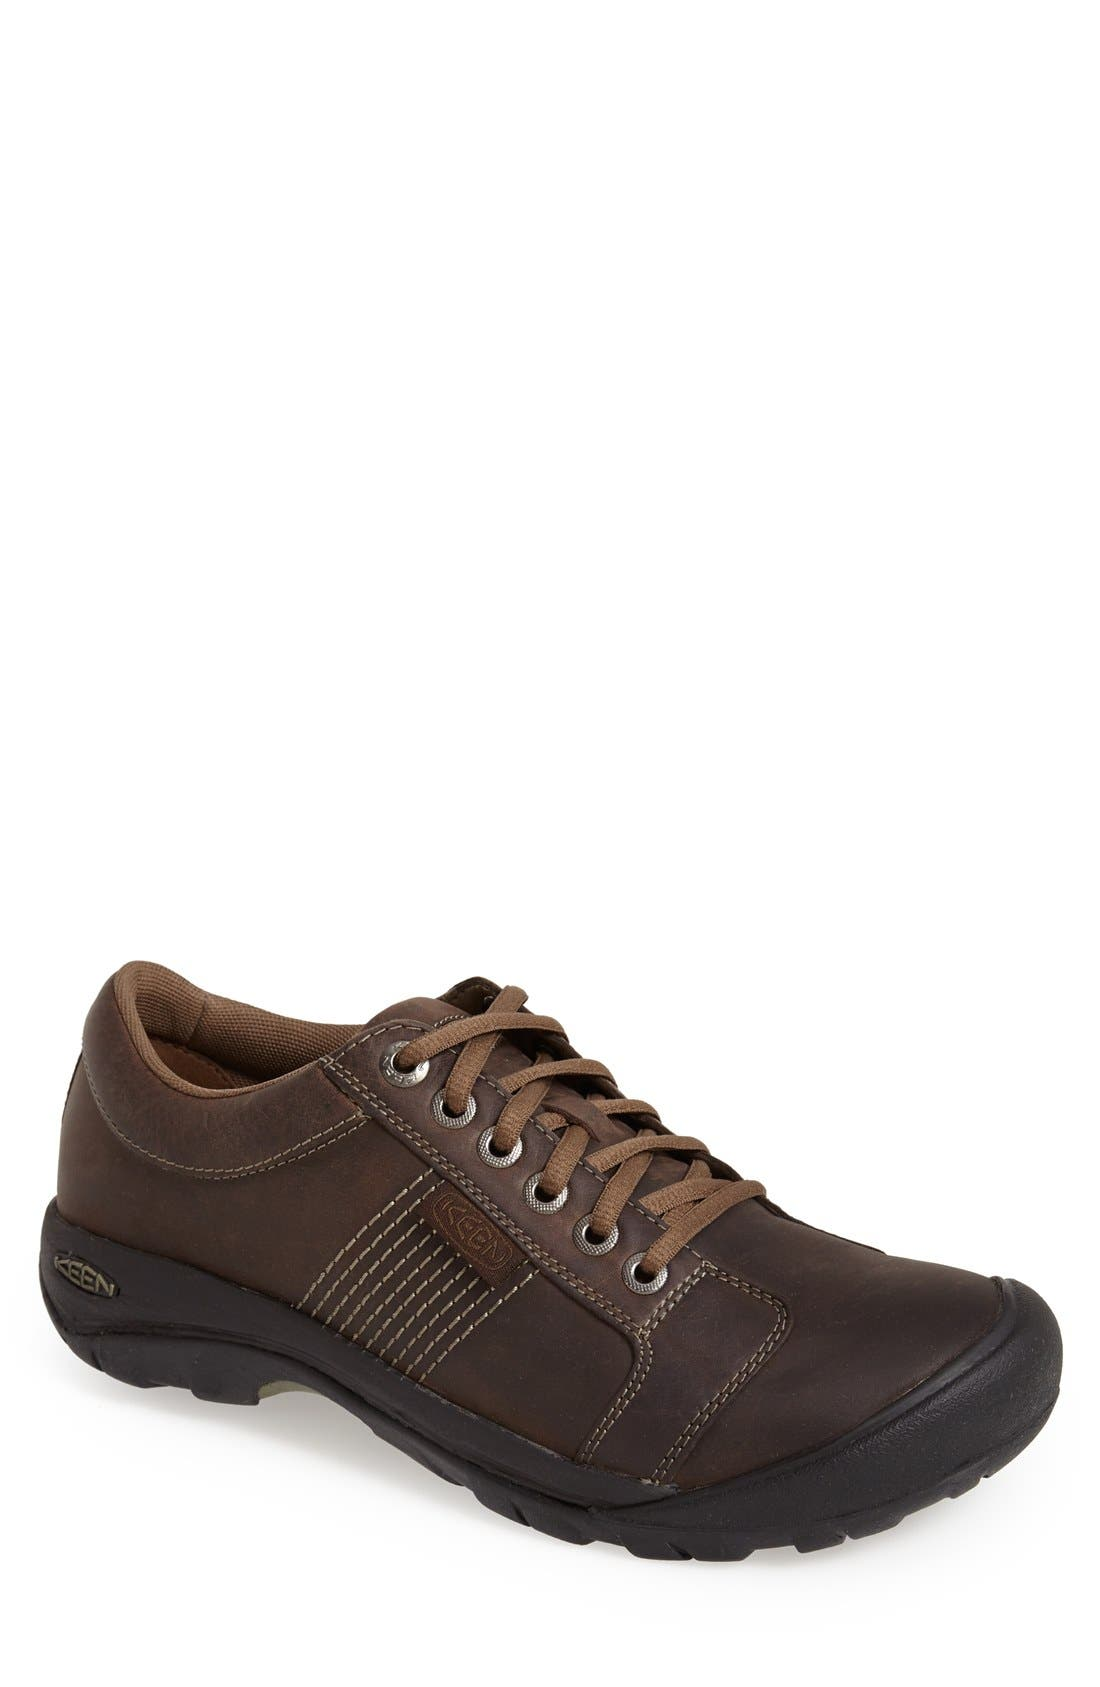 'Austin' Sneaker,                         Main,                         color, Chocolate Brown